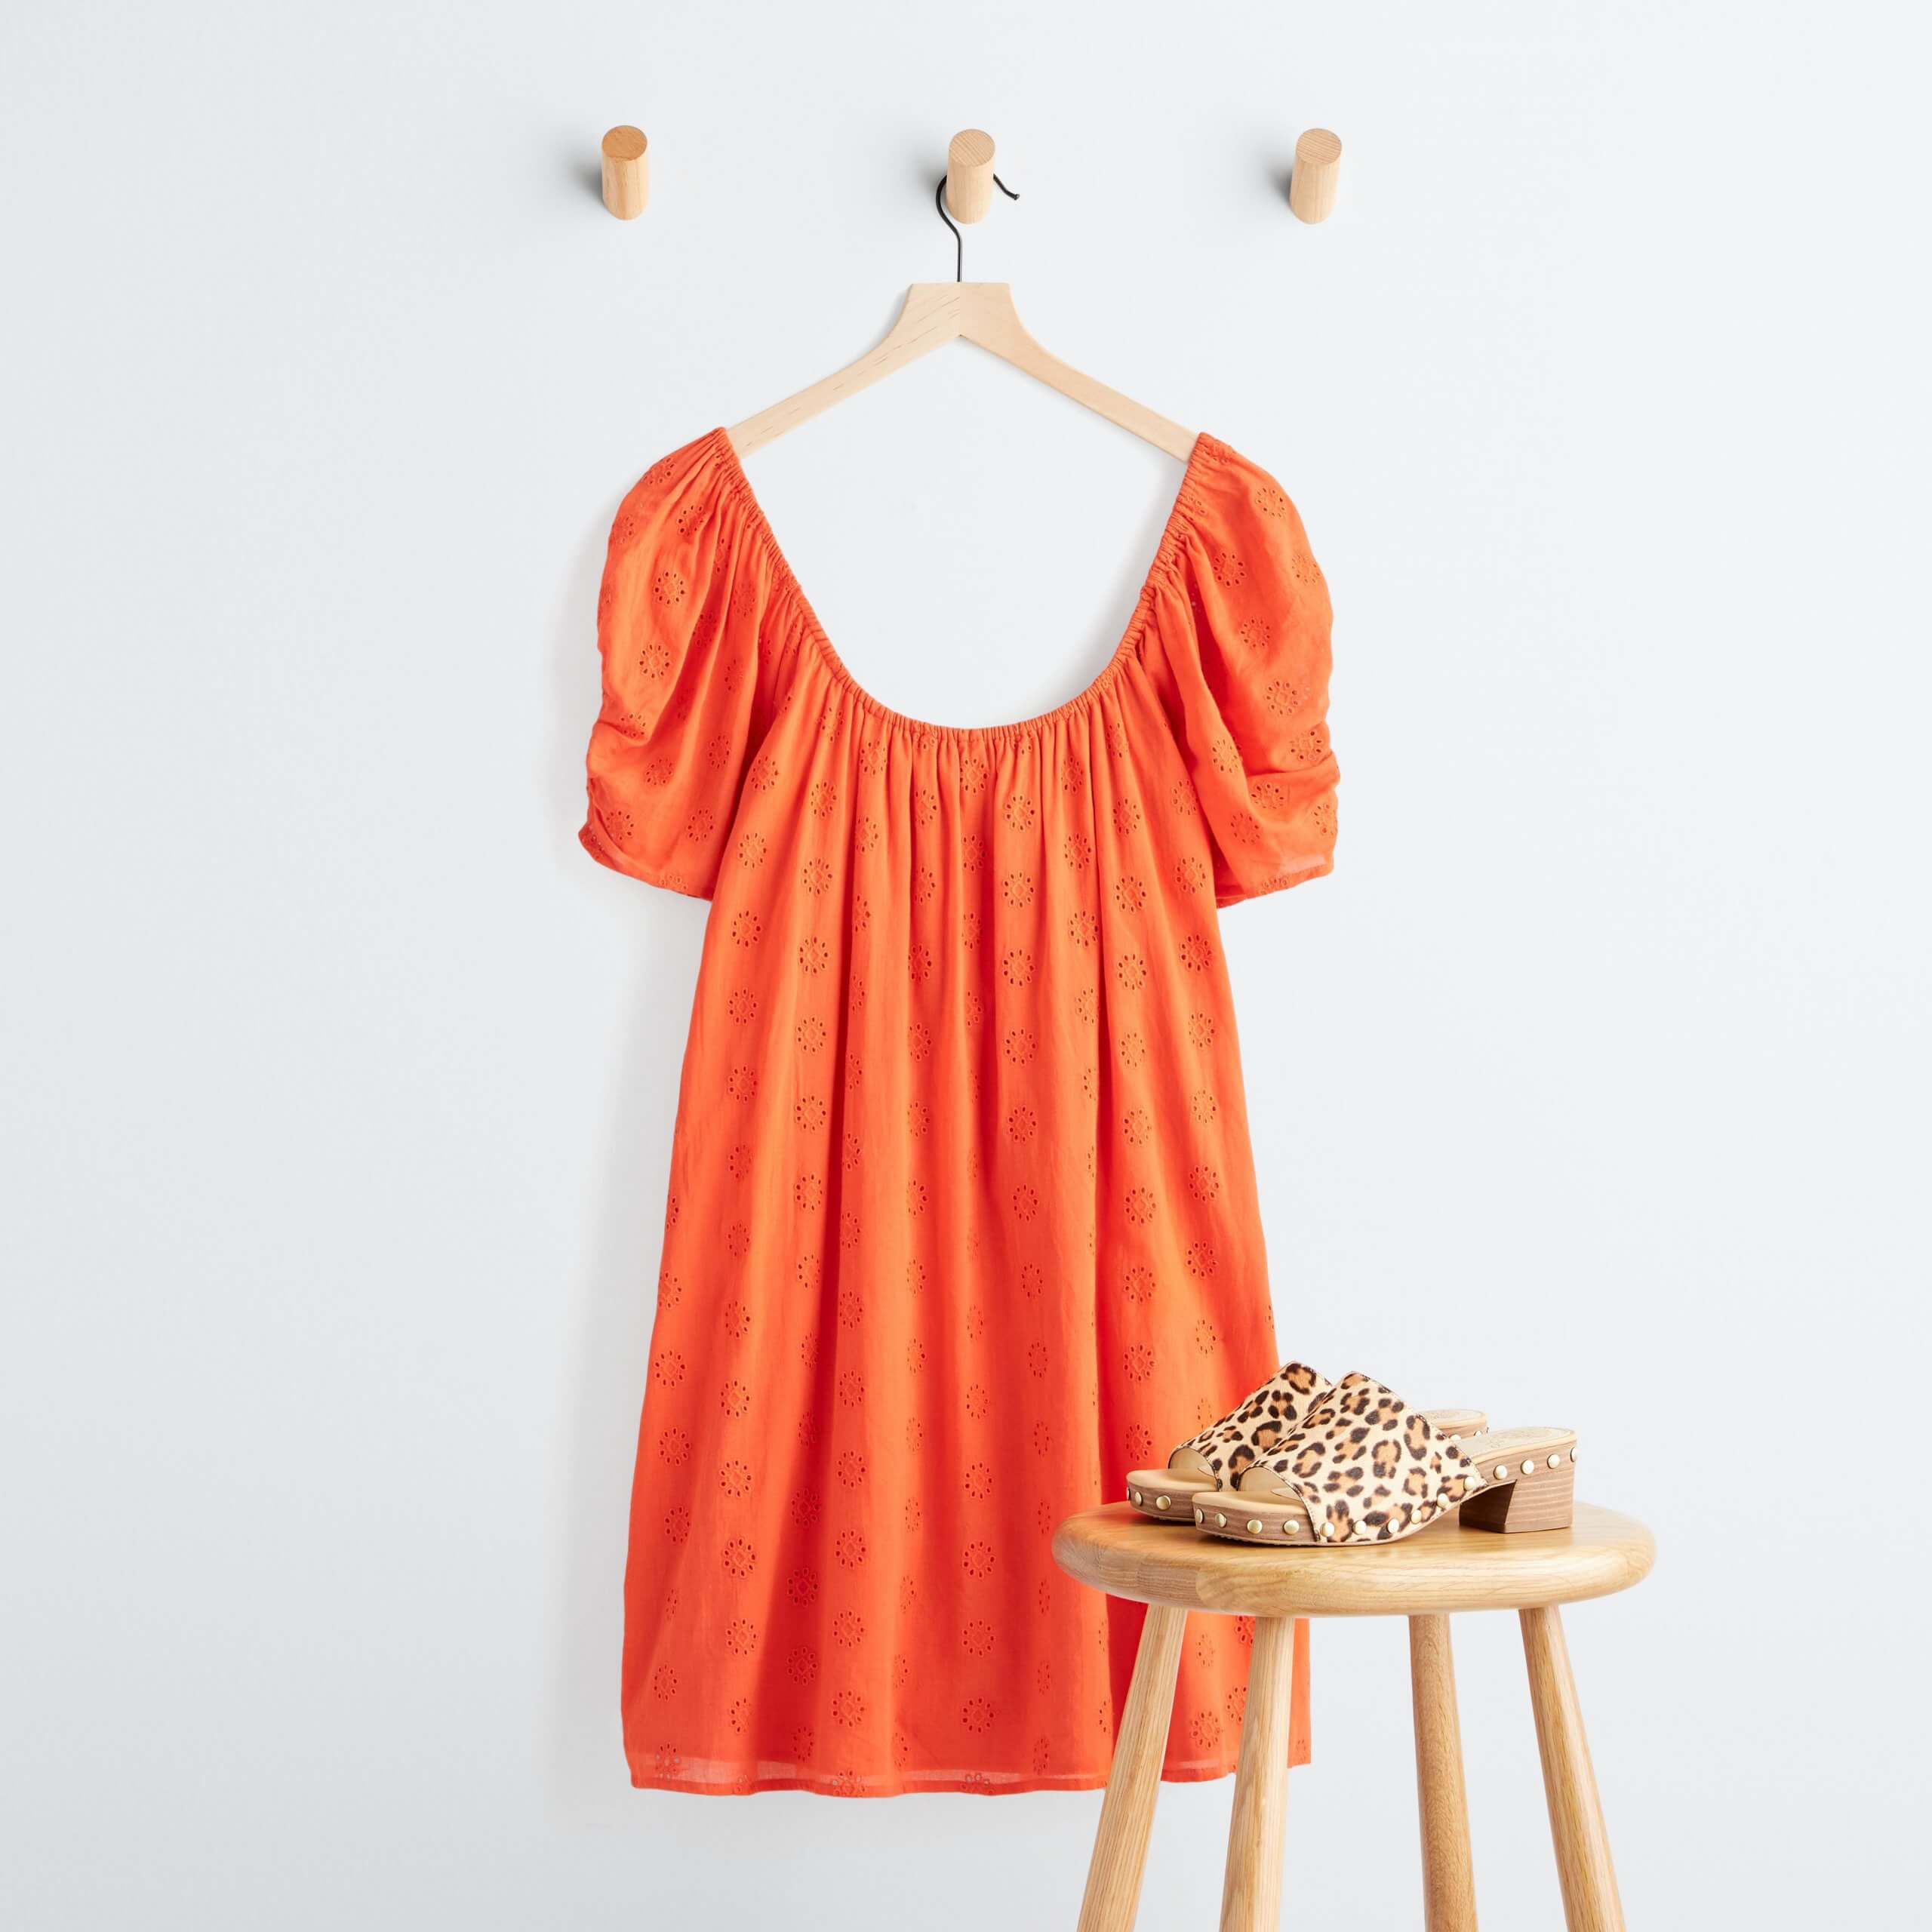 Stitch Fix Women's orange textured dress hanging on a wooden hanger and leopard-print heeled mules on a wooden stool.